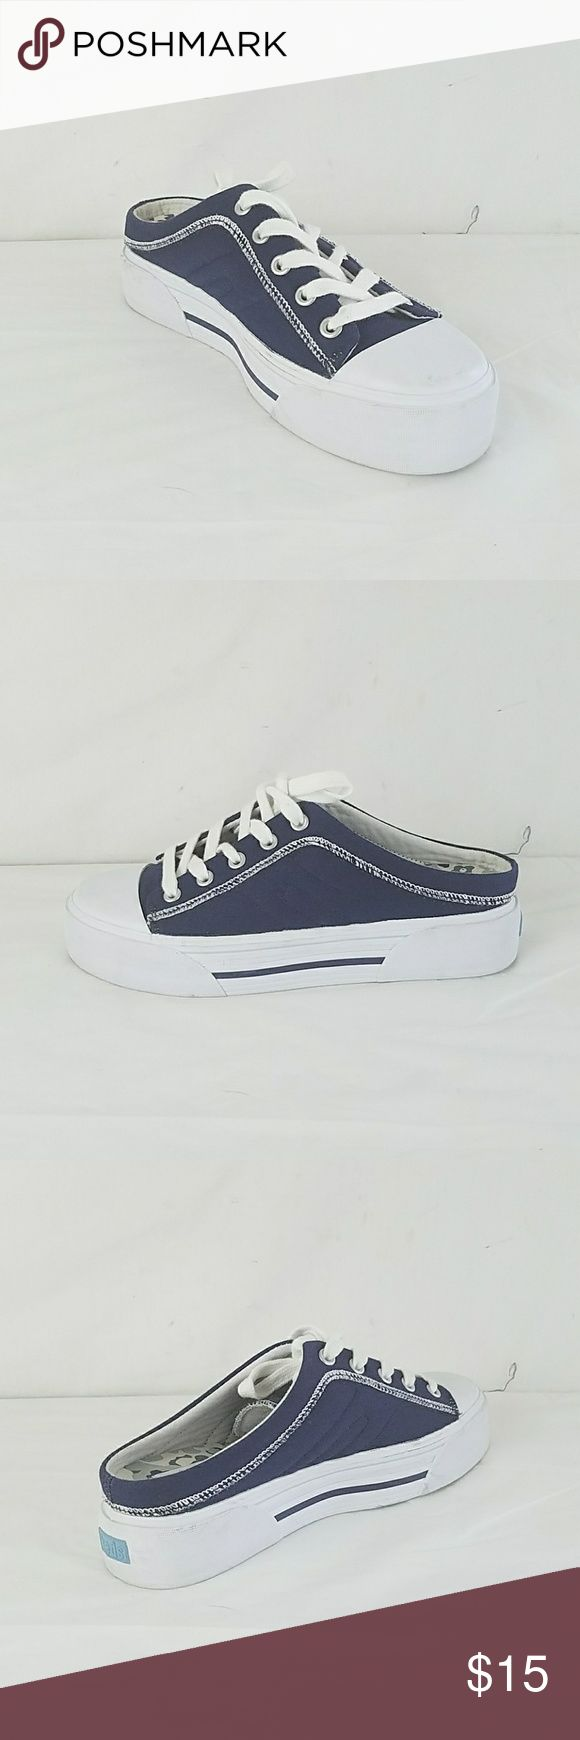 pre owned women's Keds open back shoes size 9 Keds women's low top sneakers open back  Size 9 keds Shoes Sneakers